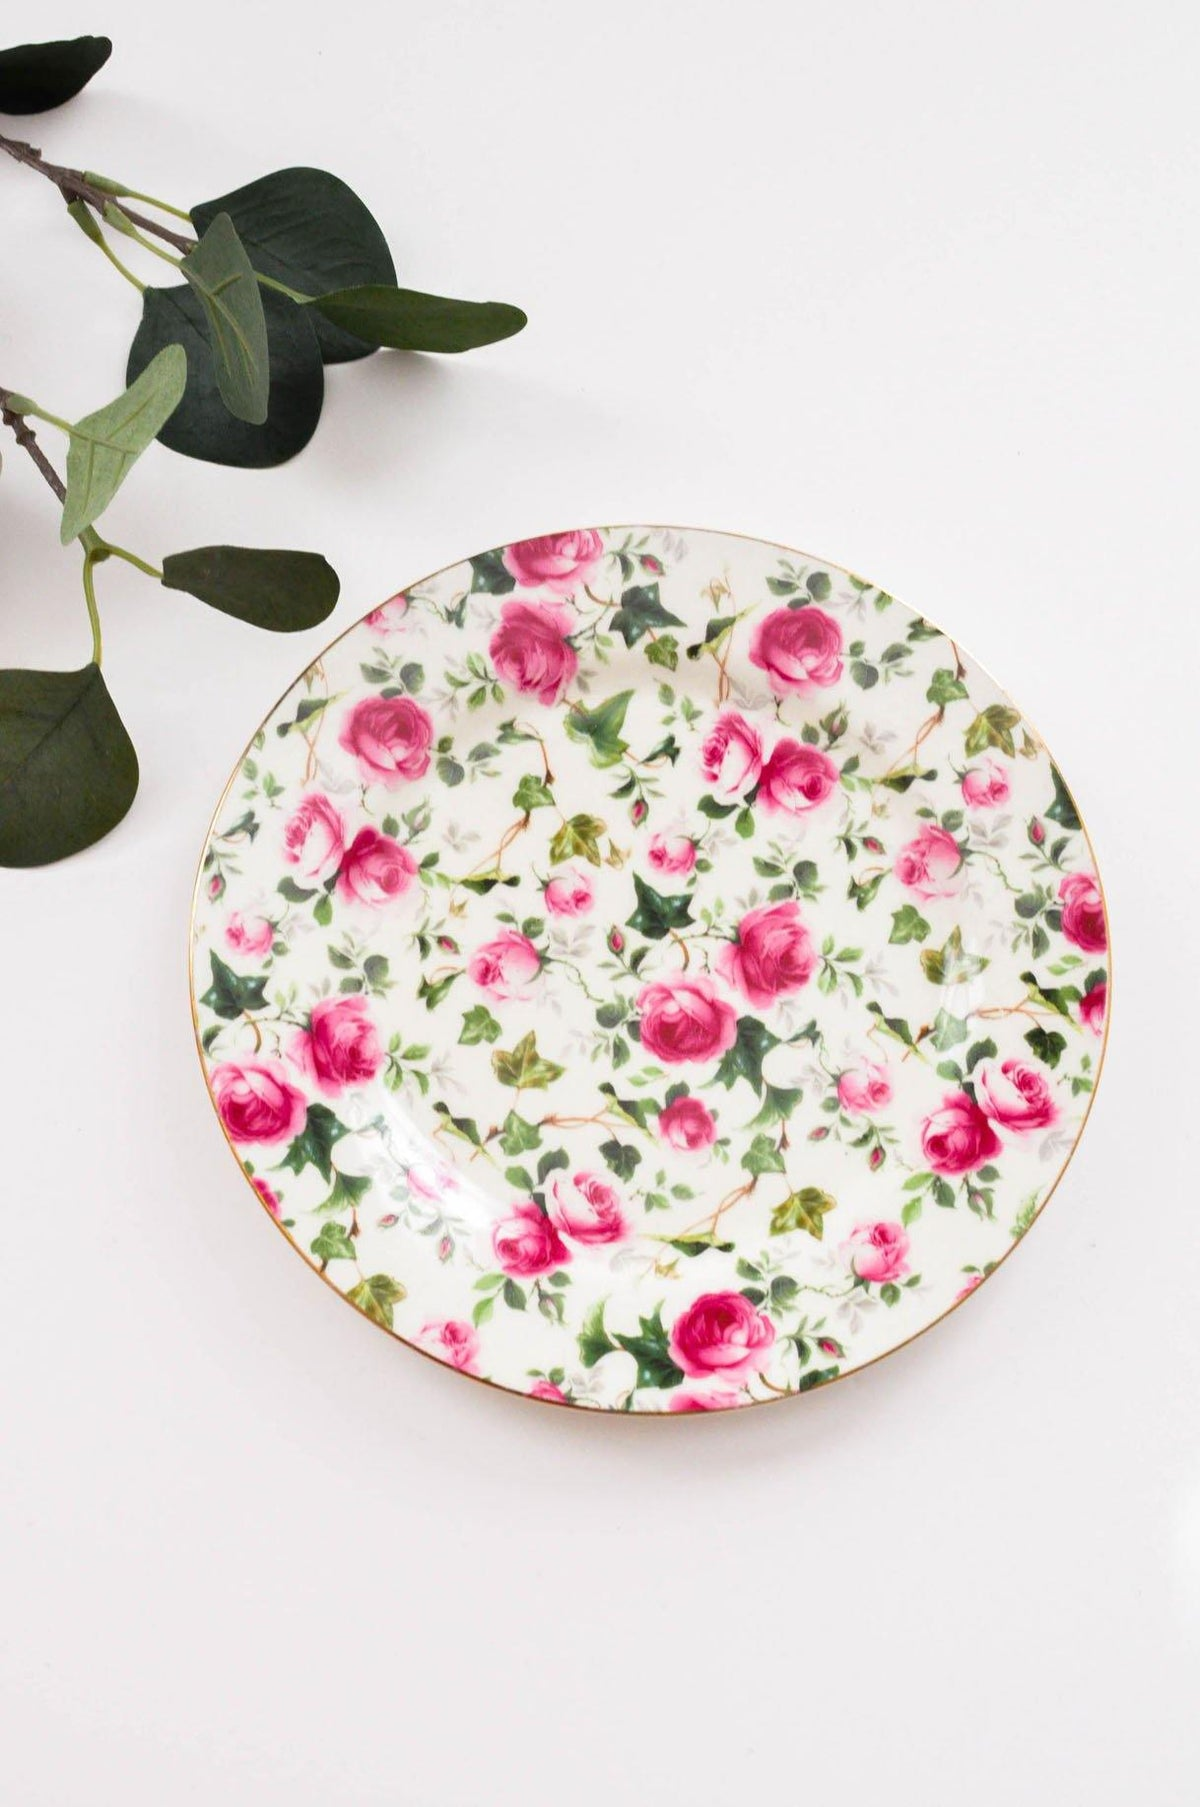 Vintage Formalities Floral Plate from Sweet & Spark.